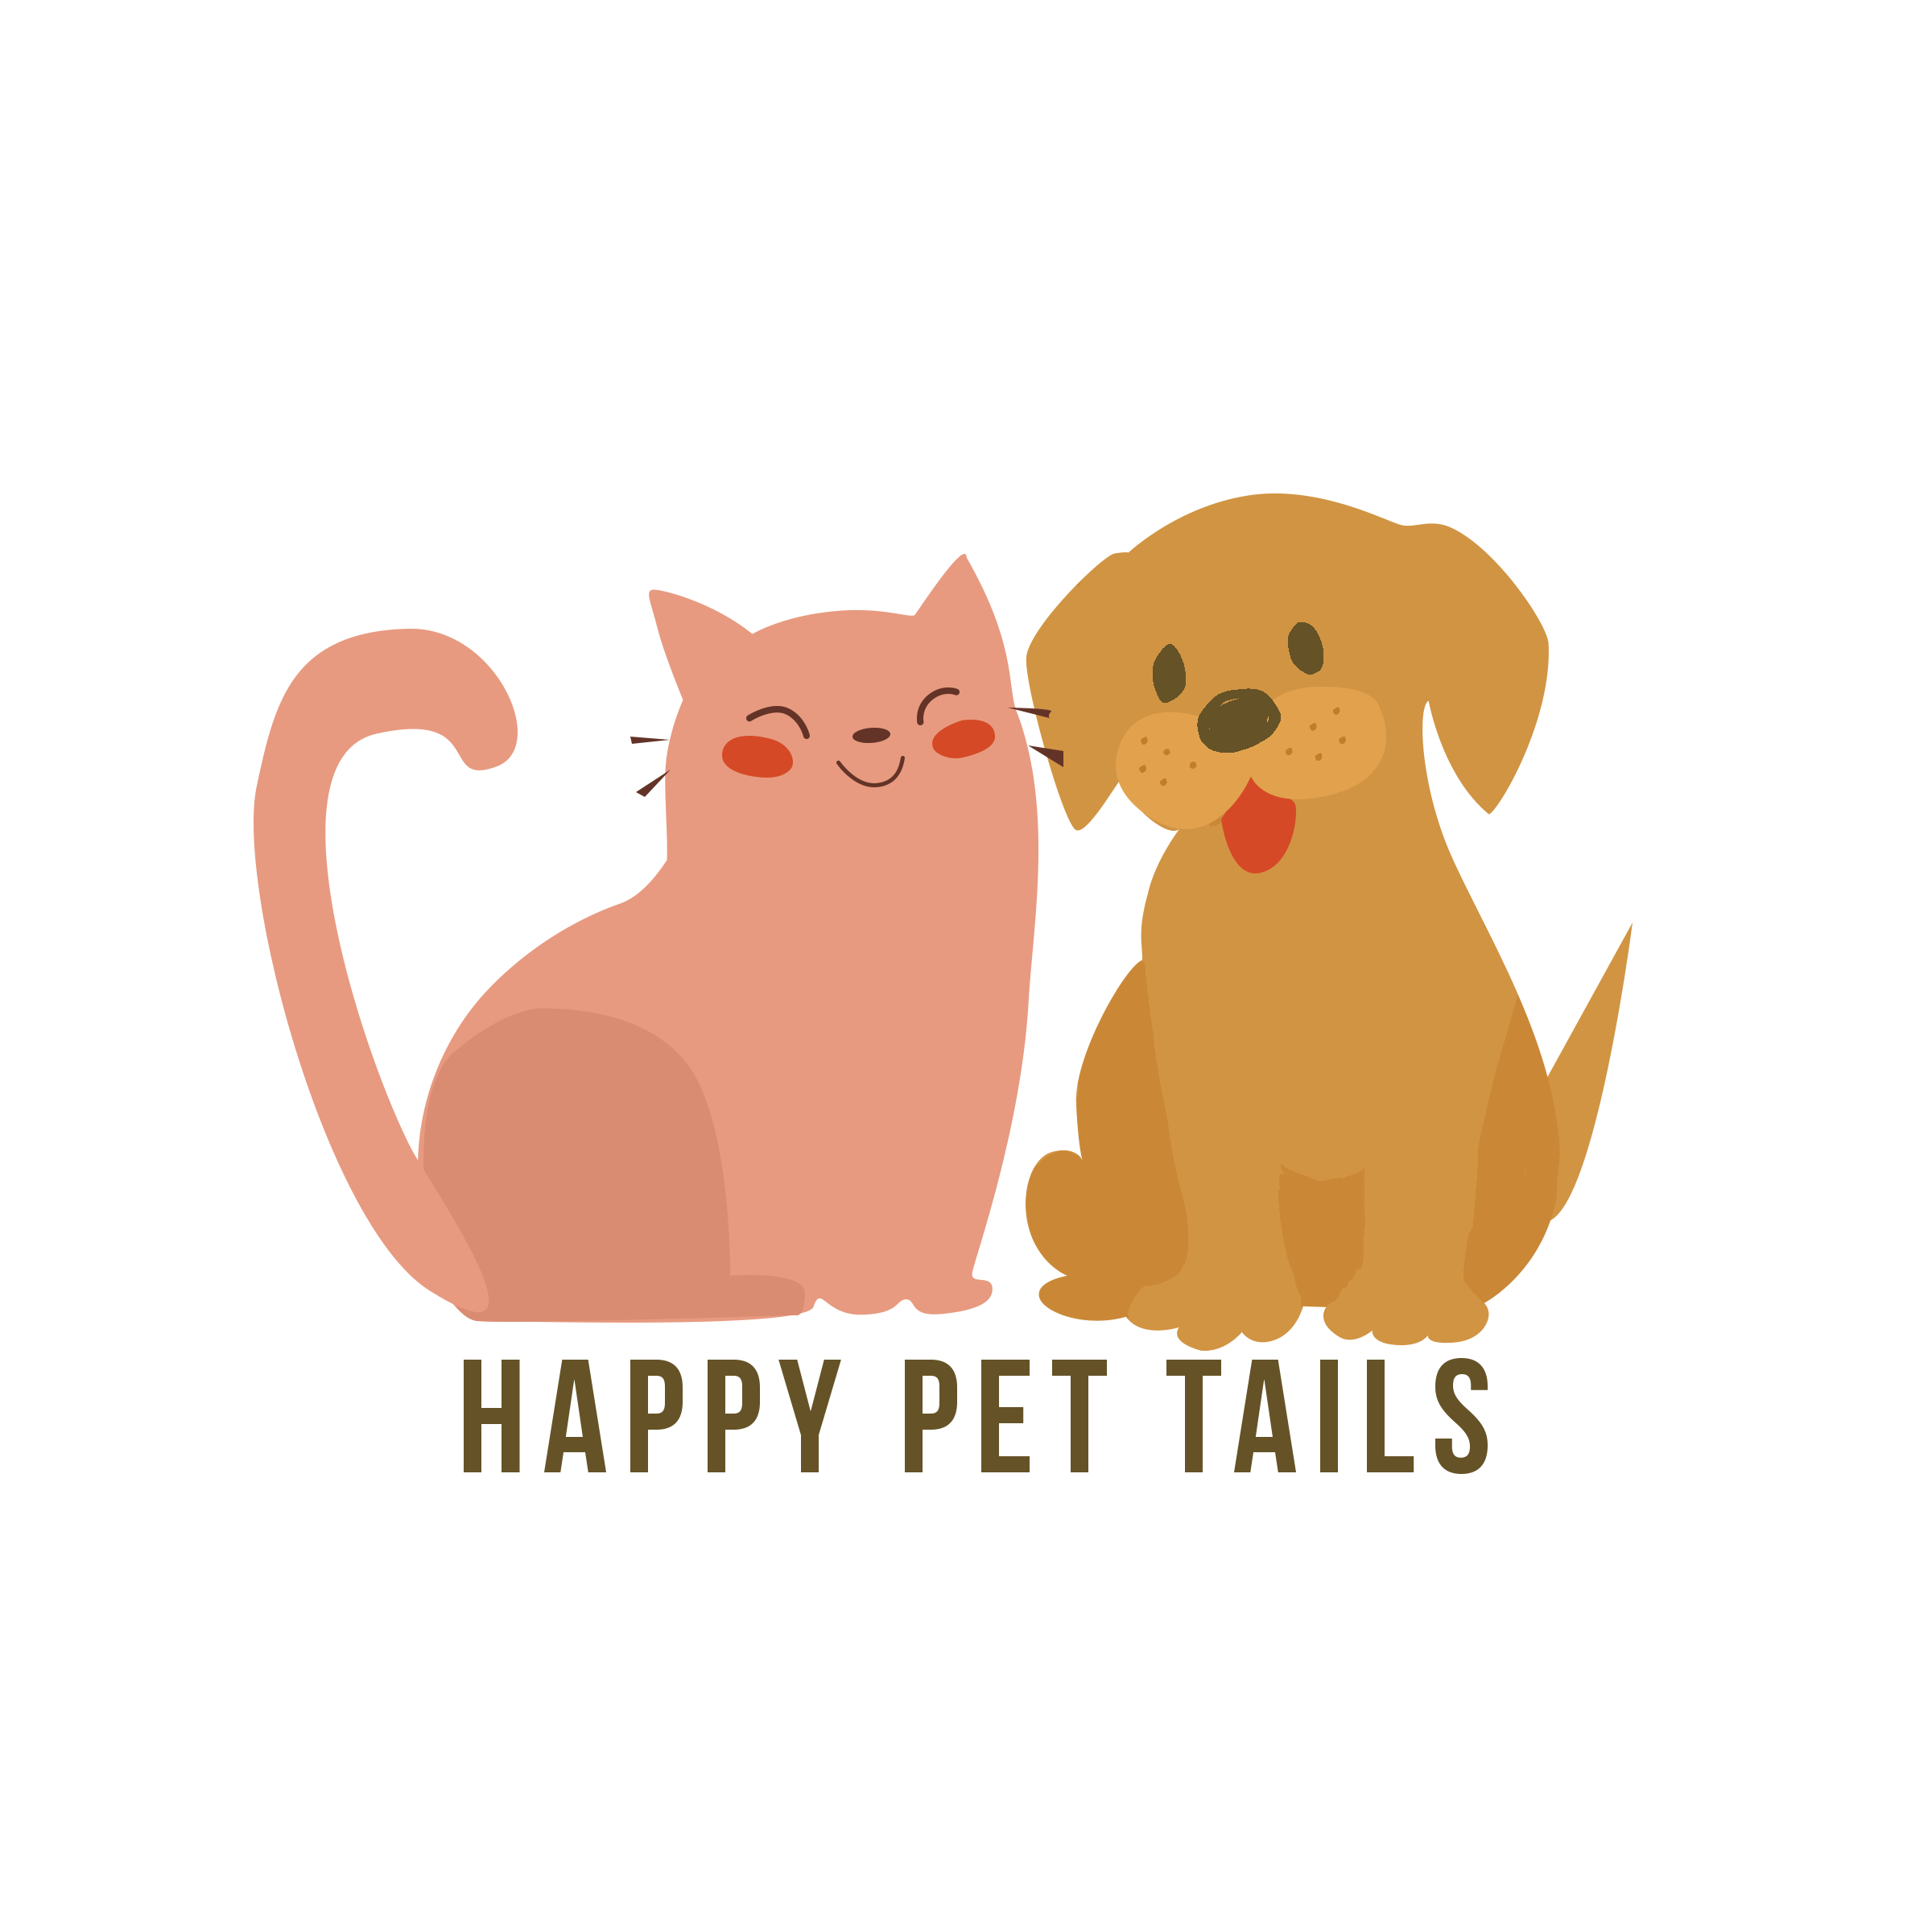 Logo Design for Happy Pet Tails company